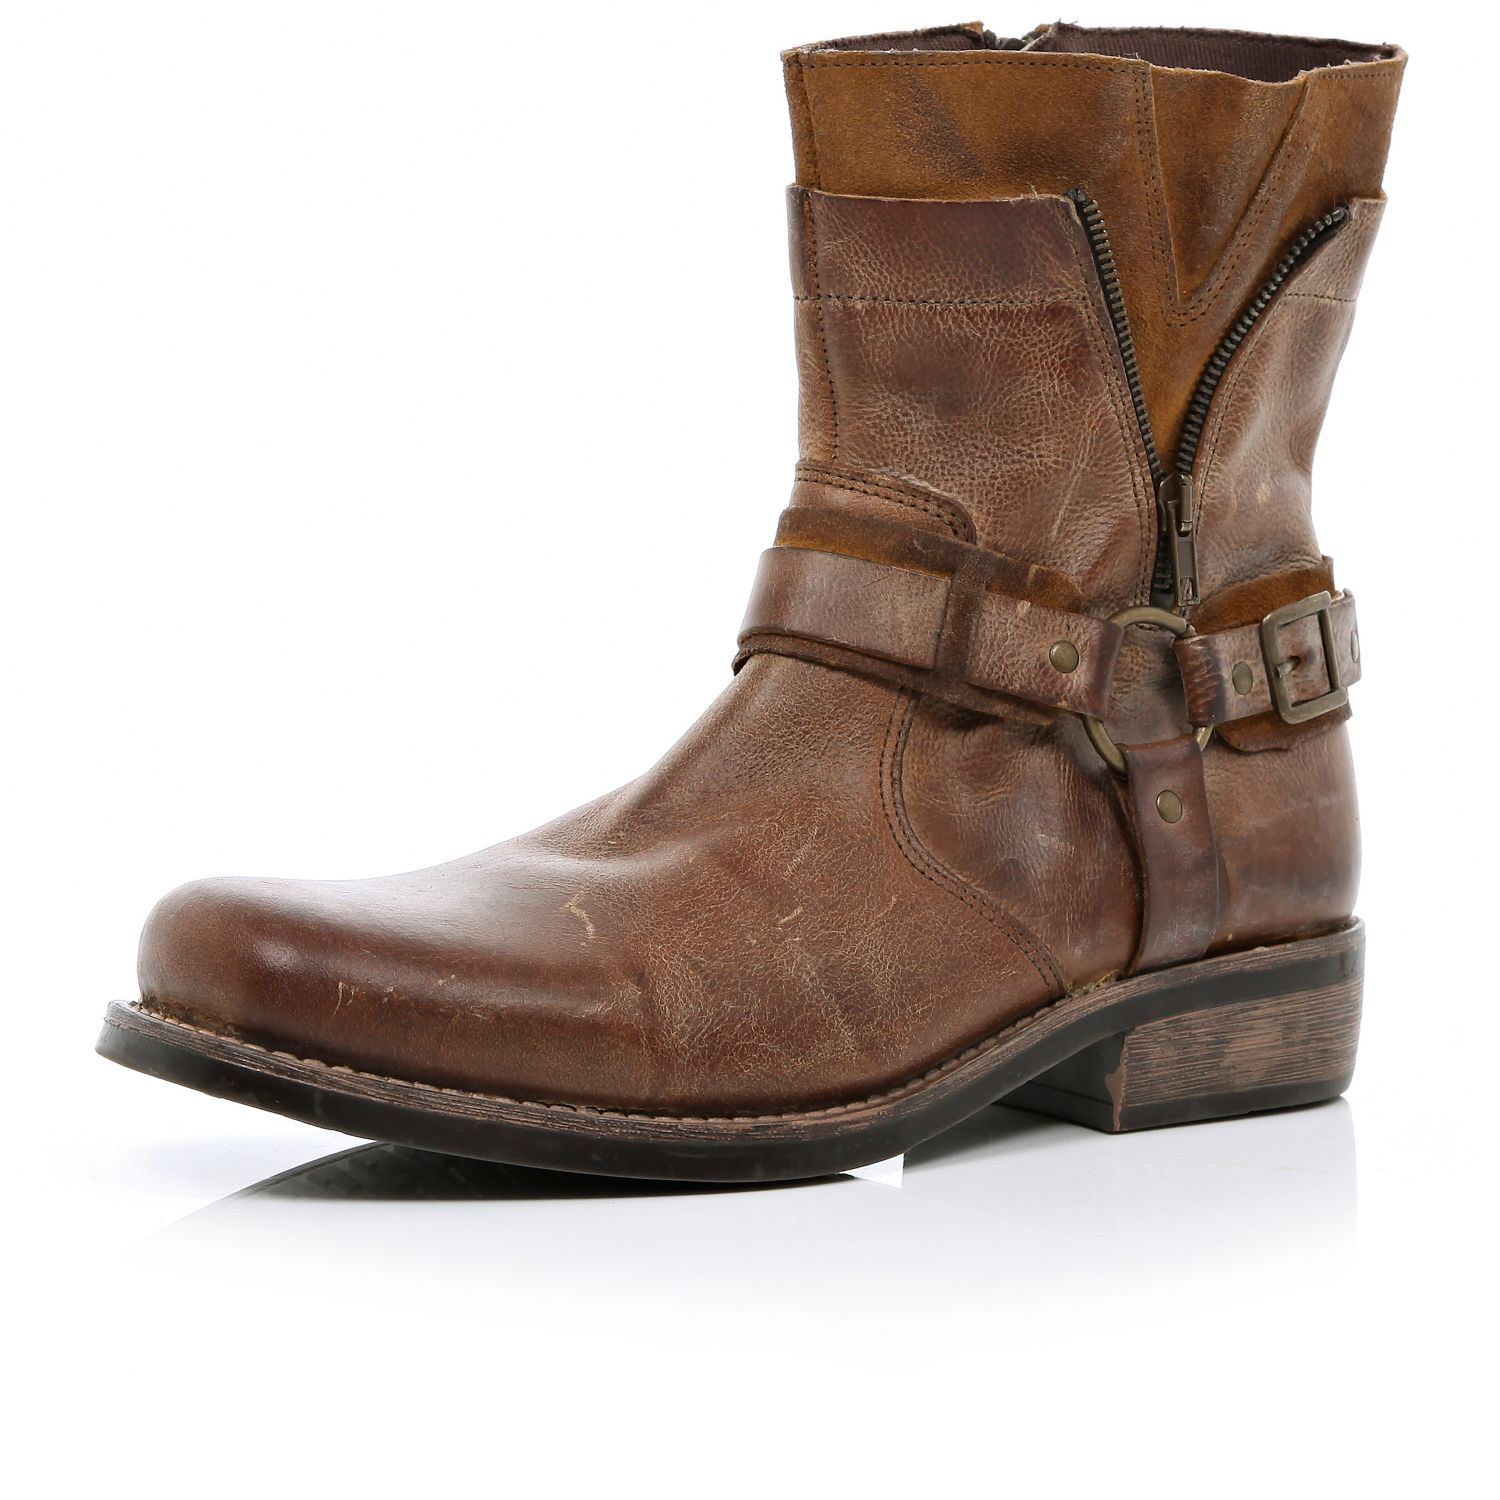 River Island Brown Distressed Biker Boots In Brown For Men